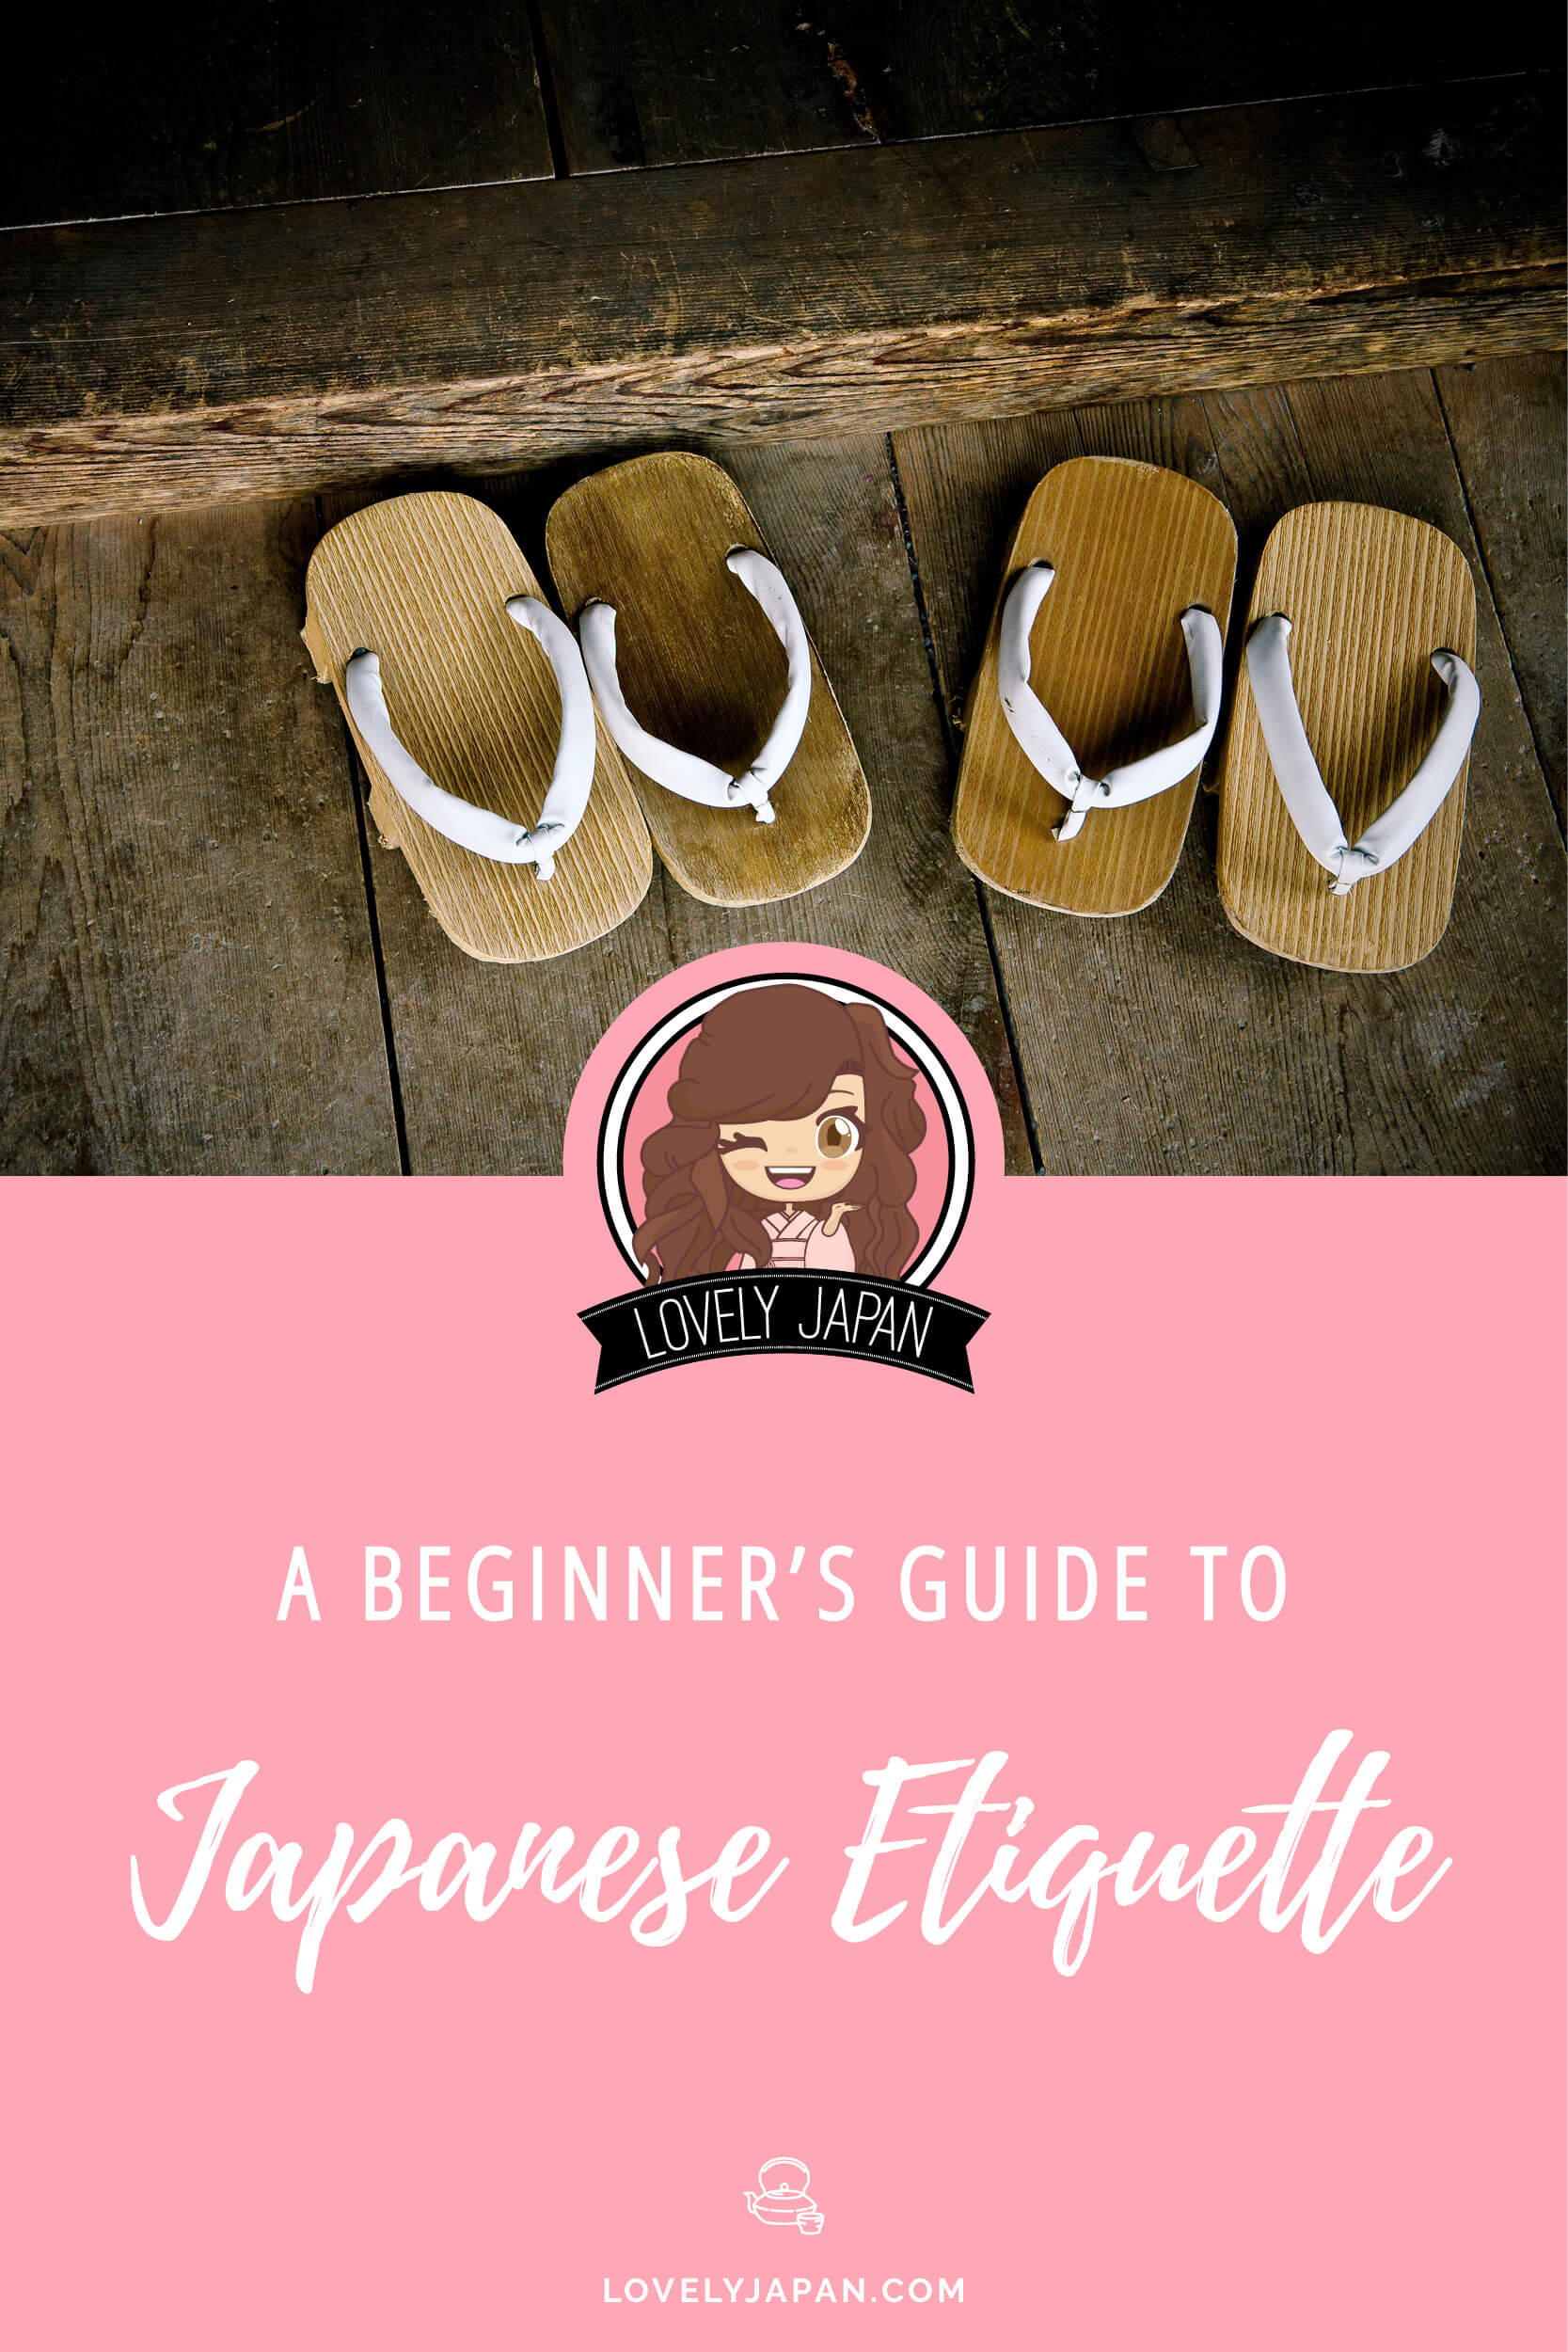 A Beginner's Guide to Japanese Etiquette